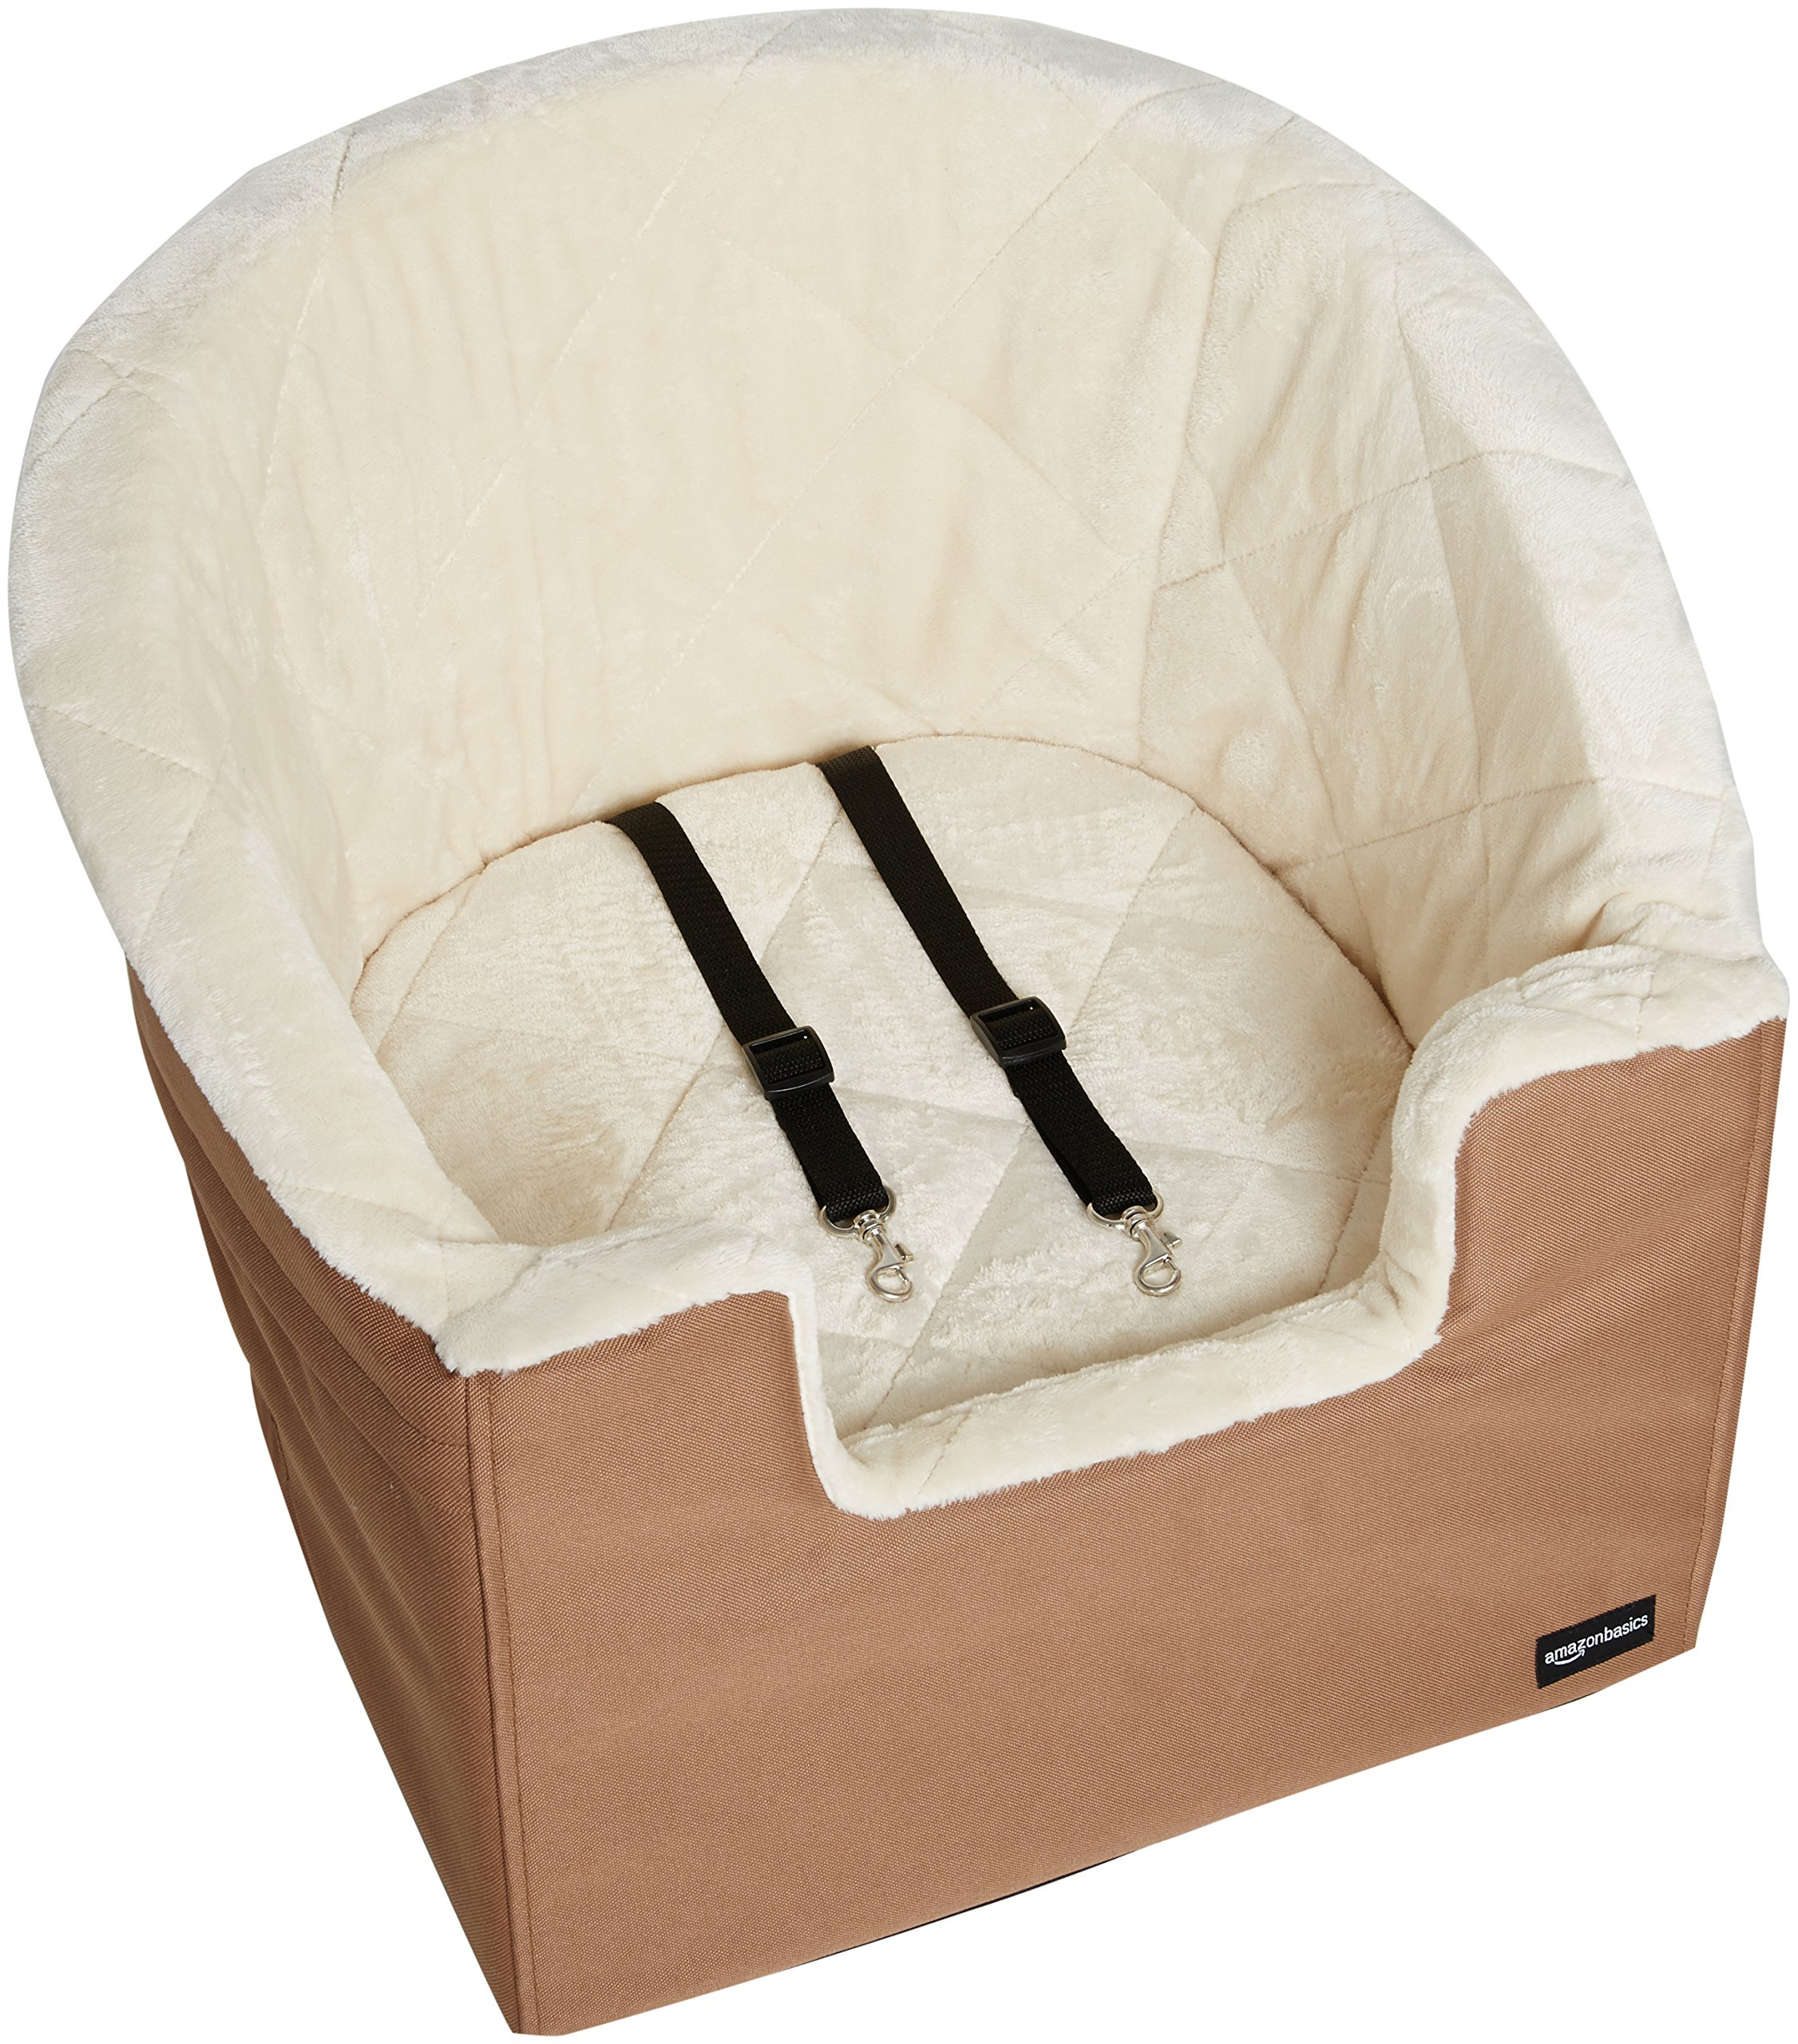 AmazonBasics Pet Car Booster Bucket Seat - 18 x 18 x 16 Inches by AmazonBasics